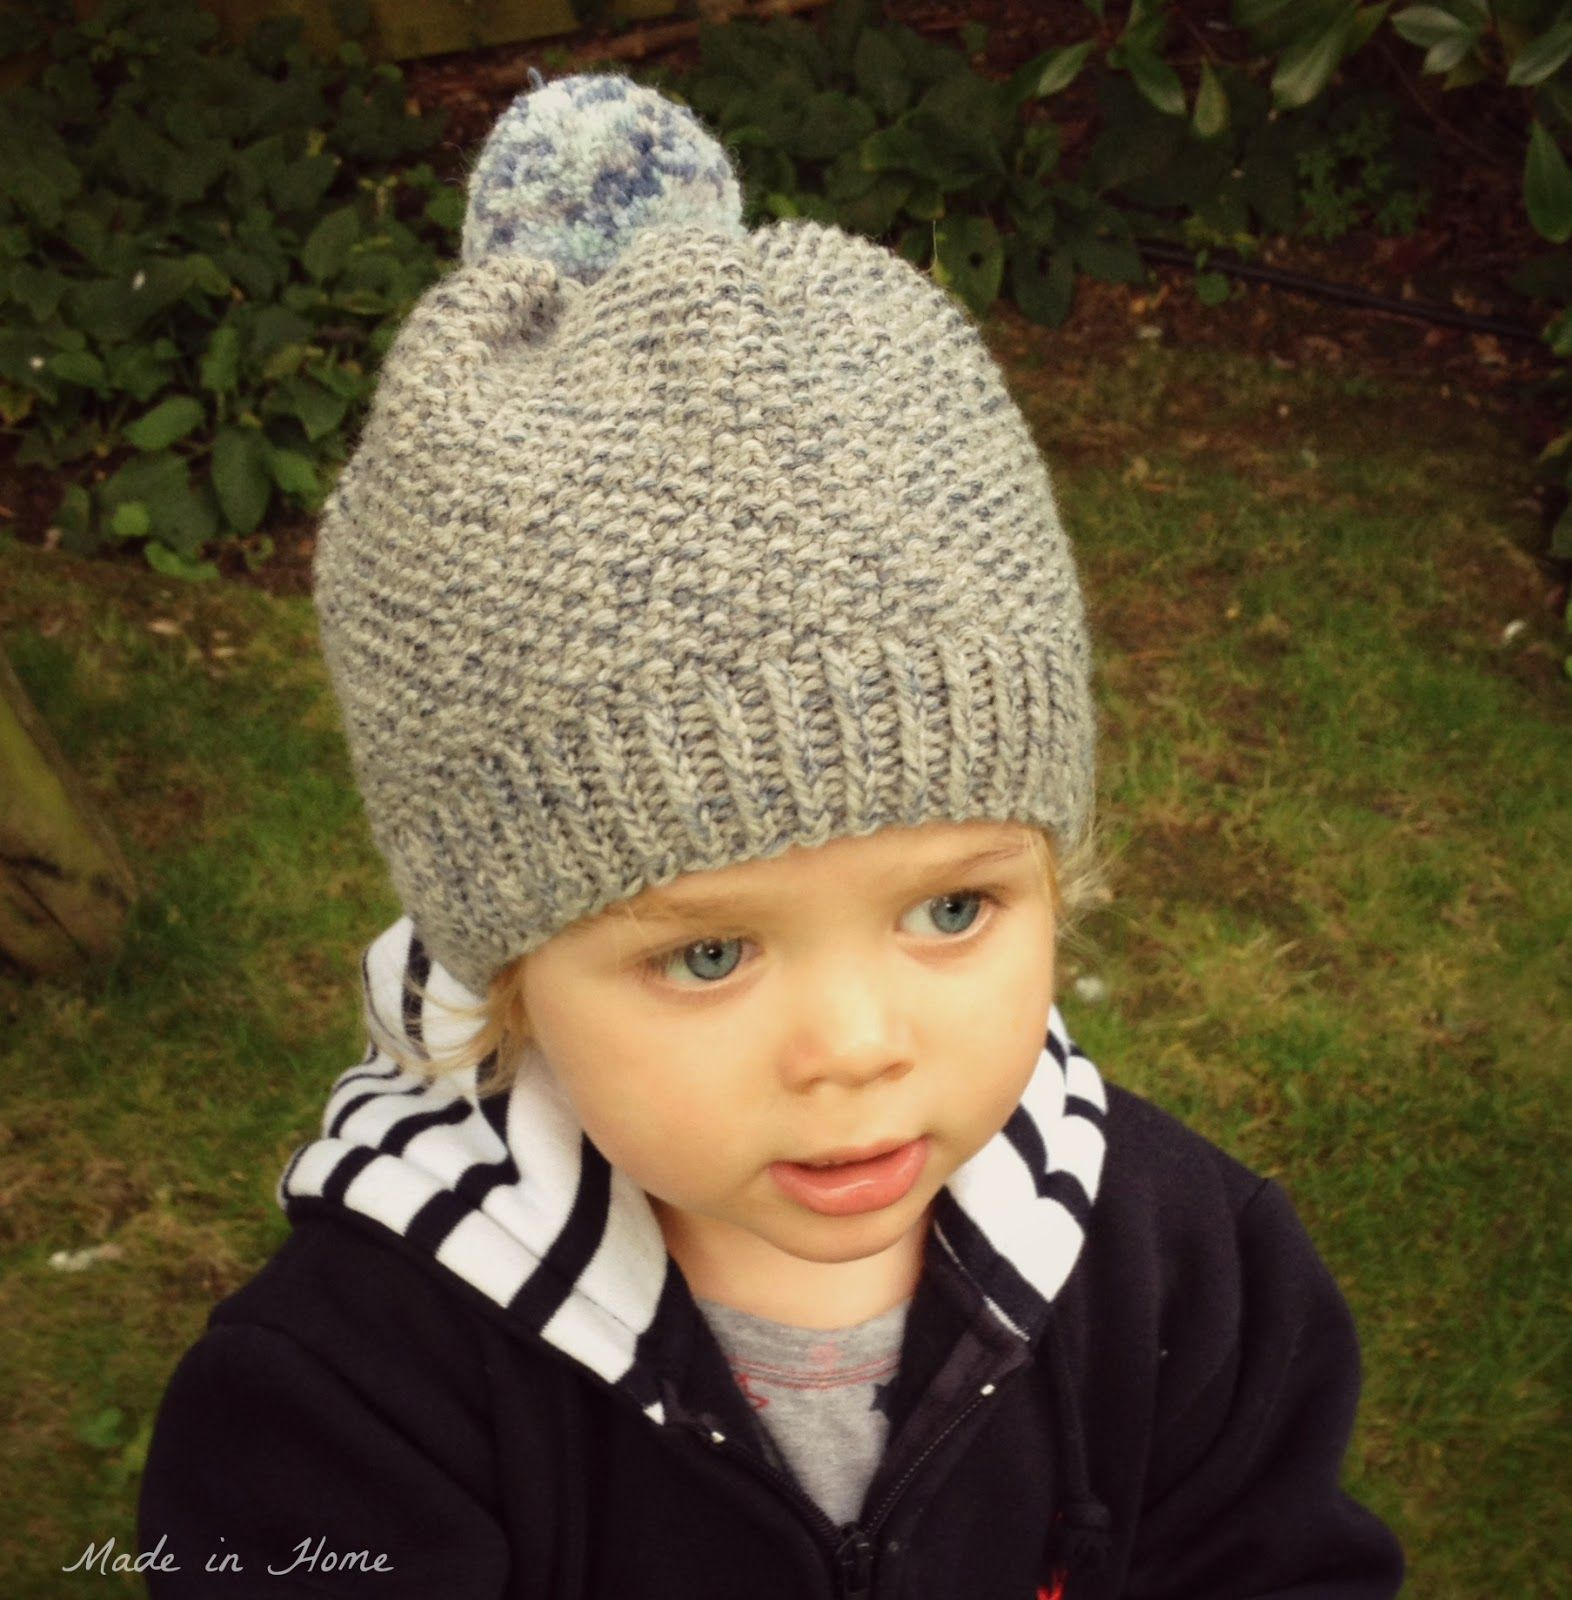 Toddler Beanie Knitting Pattern : Made in Home: Toddler Pompom Beanie Hat A free pattern {Knitting}--Used for...